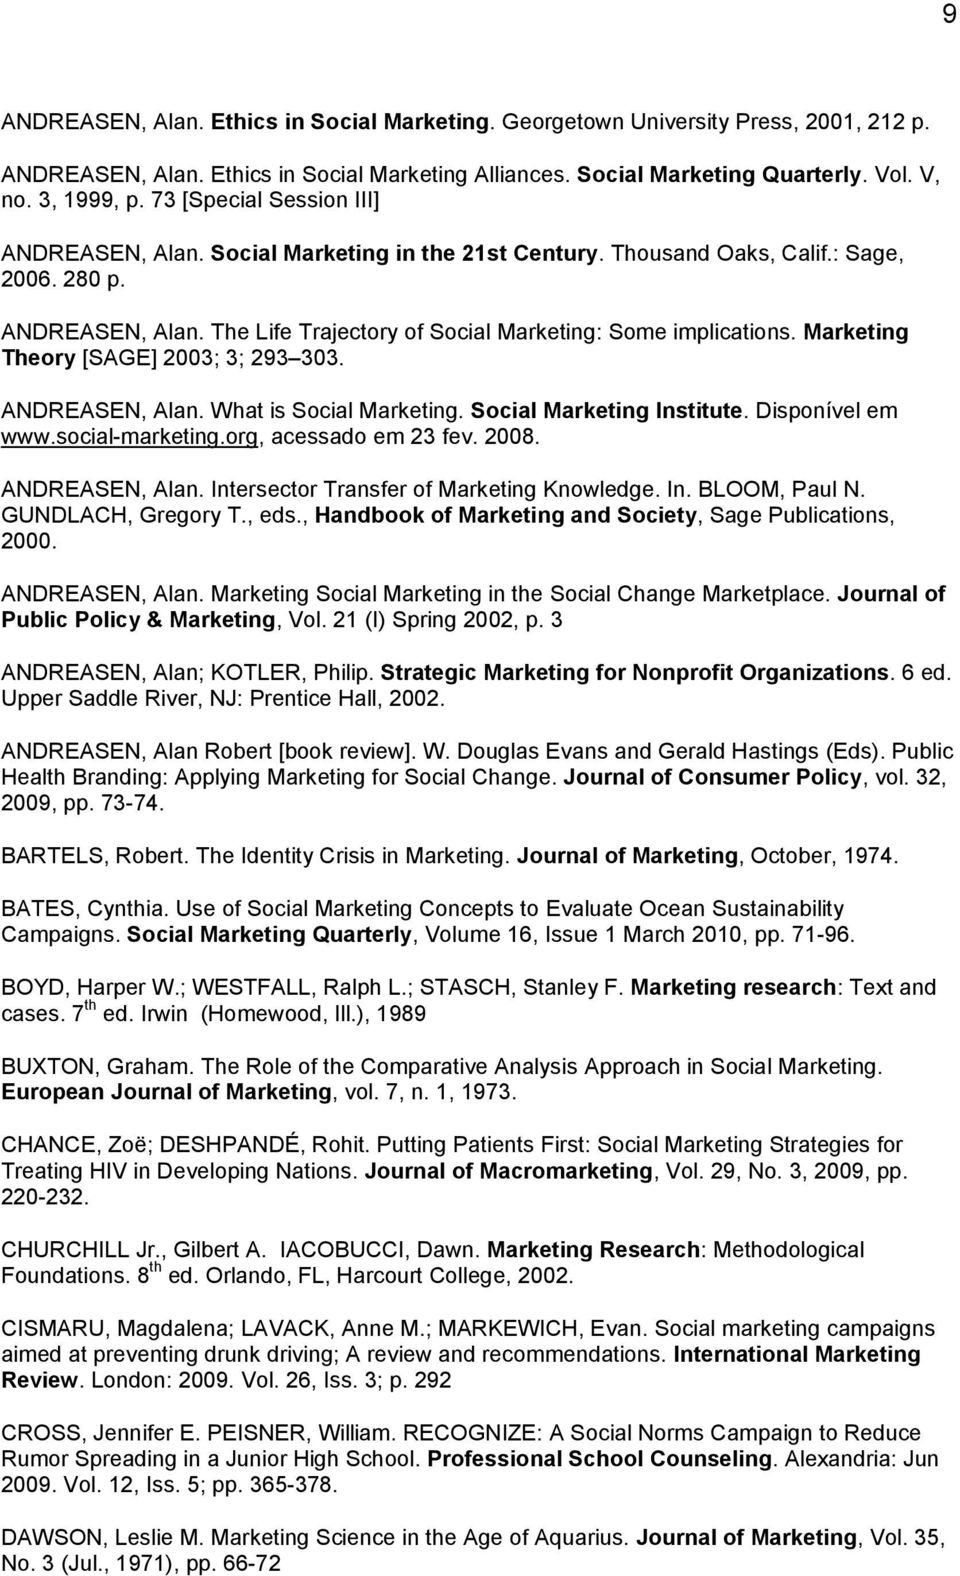 Marketing Theory [SAGE] 2003; 3; 293 303. ANDREASEN, Alan. What is Social Marketing. Social Marketing Institute. Disponível em www.social-marketing.org, acessado em 23 fev. 2008. ANDREASEN, Alan. Intersector Transfer of Marketing Knowledge.